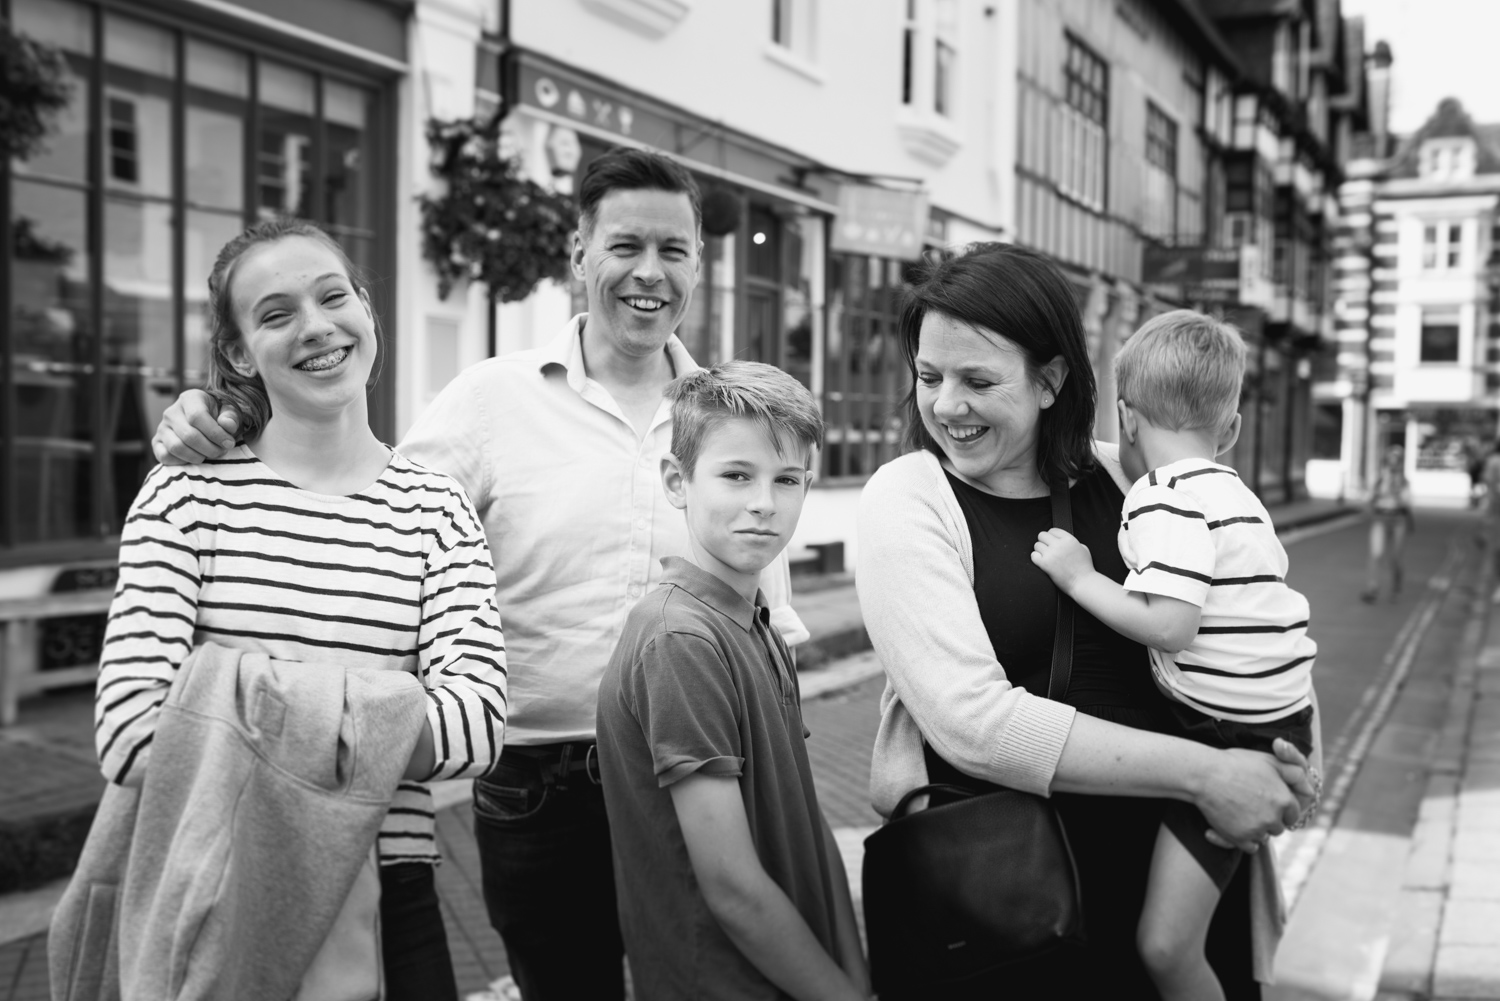 Black and White Family Portrait in Winchester City Centre by Hampshire Children's photographer Evie Winter